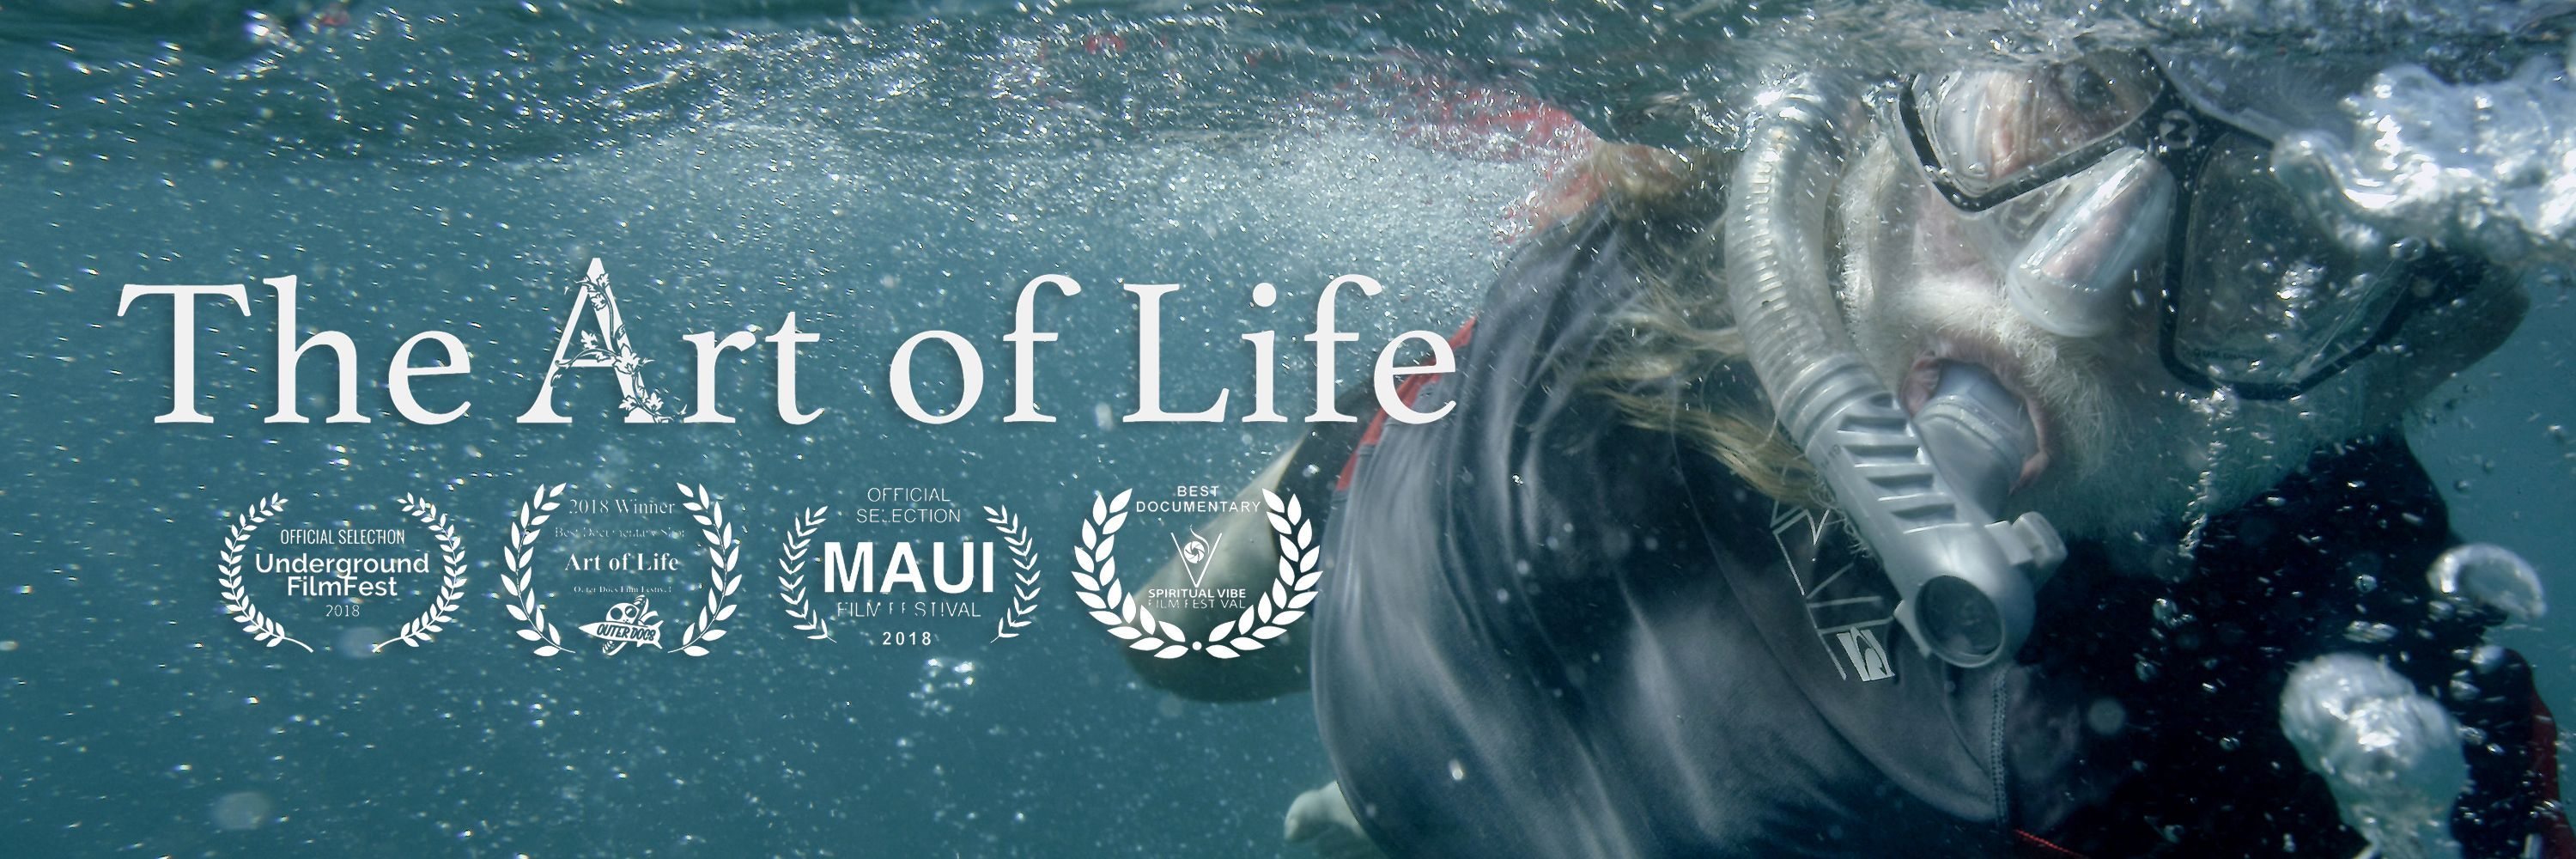 'Art of Life' Award Winning Documentary